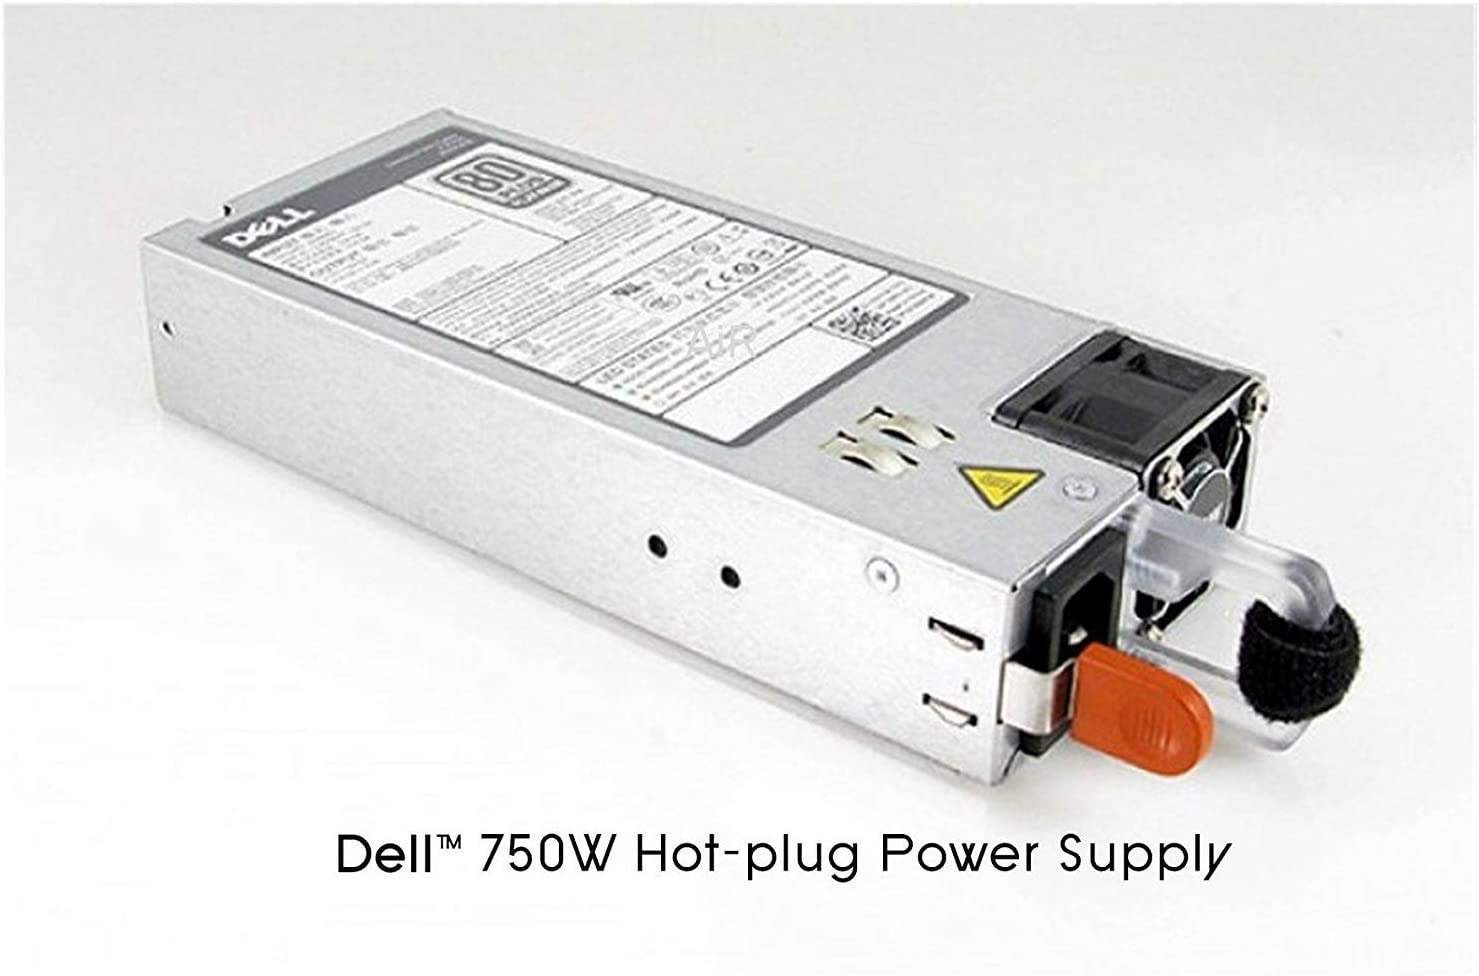 Dell 750W redundant power supply for PowerEdge R720, R720XD, R520, R620, R820, T320, T420 and T620 server.